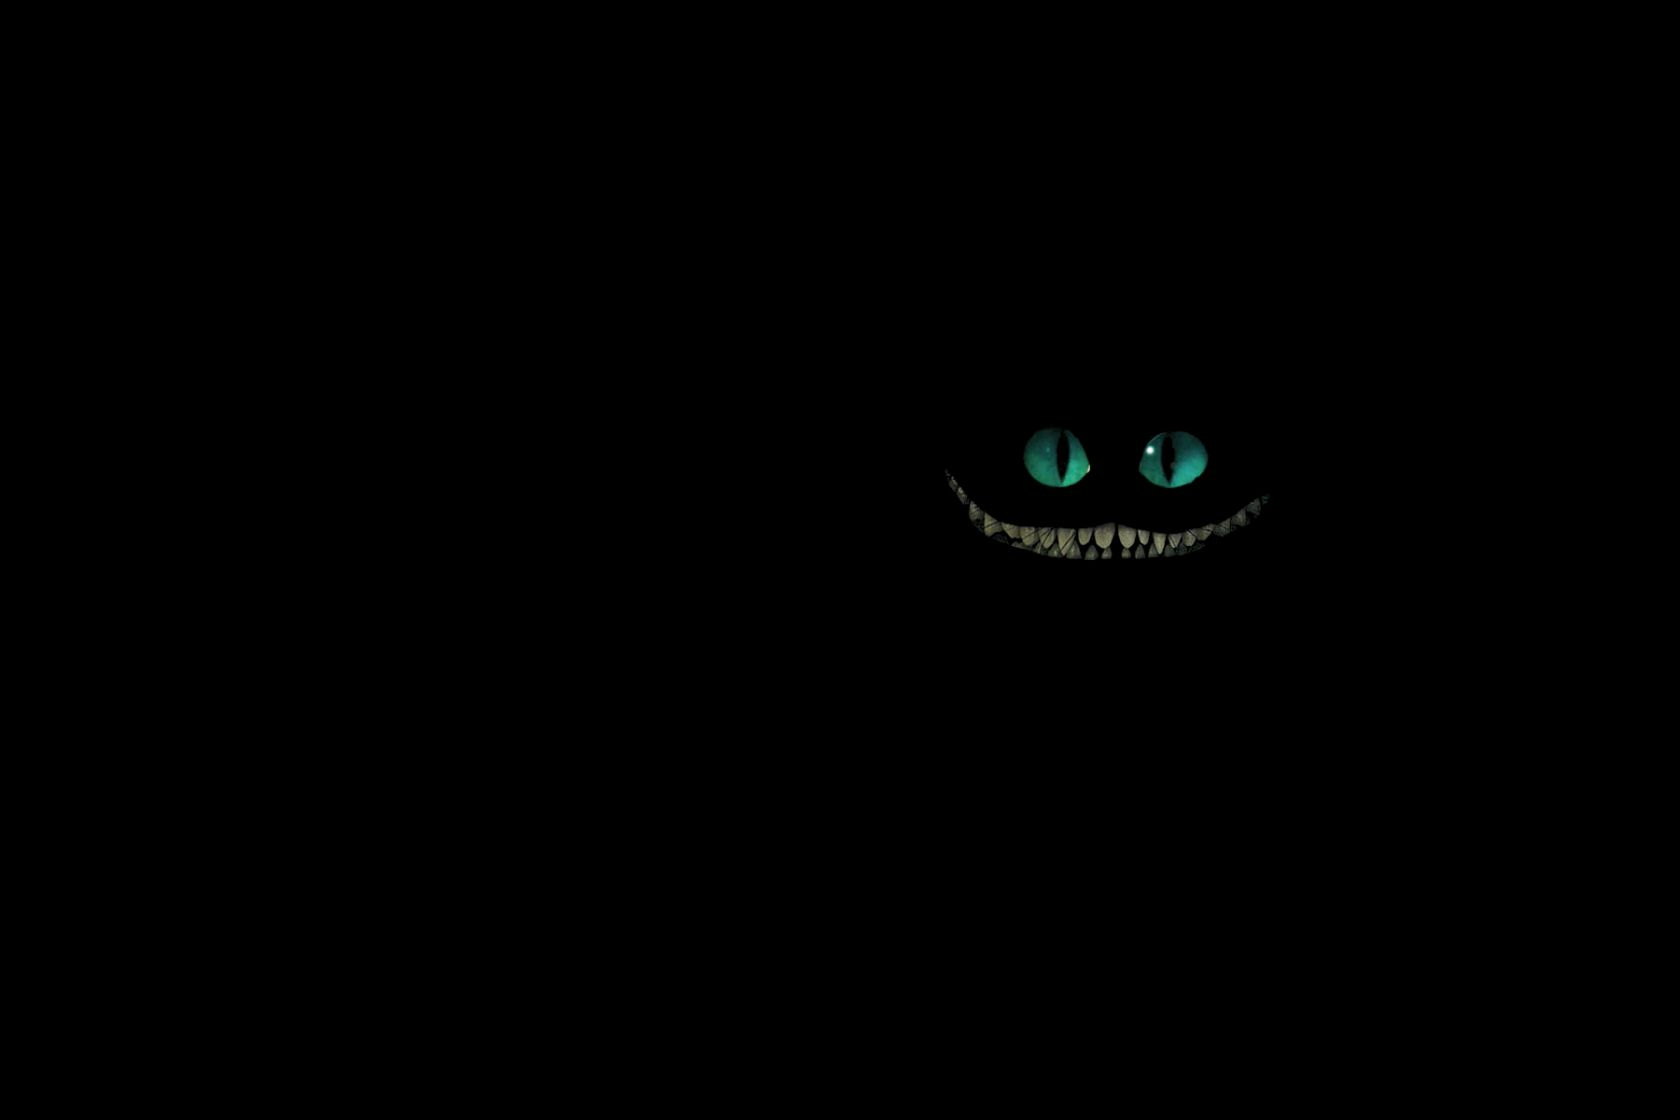 Cheshire Cat 1800x1200 Wallpaper Wallpapers Pictures Piccit 1680x1120